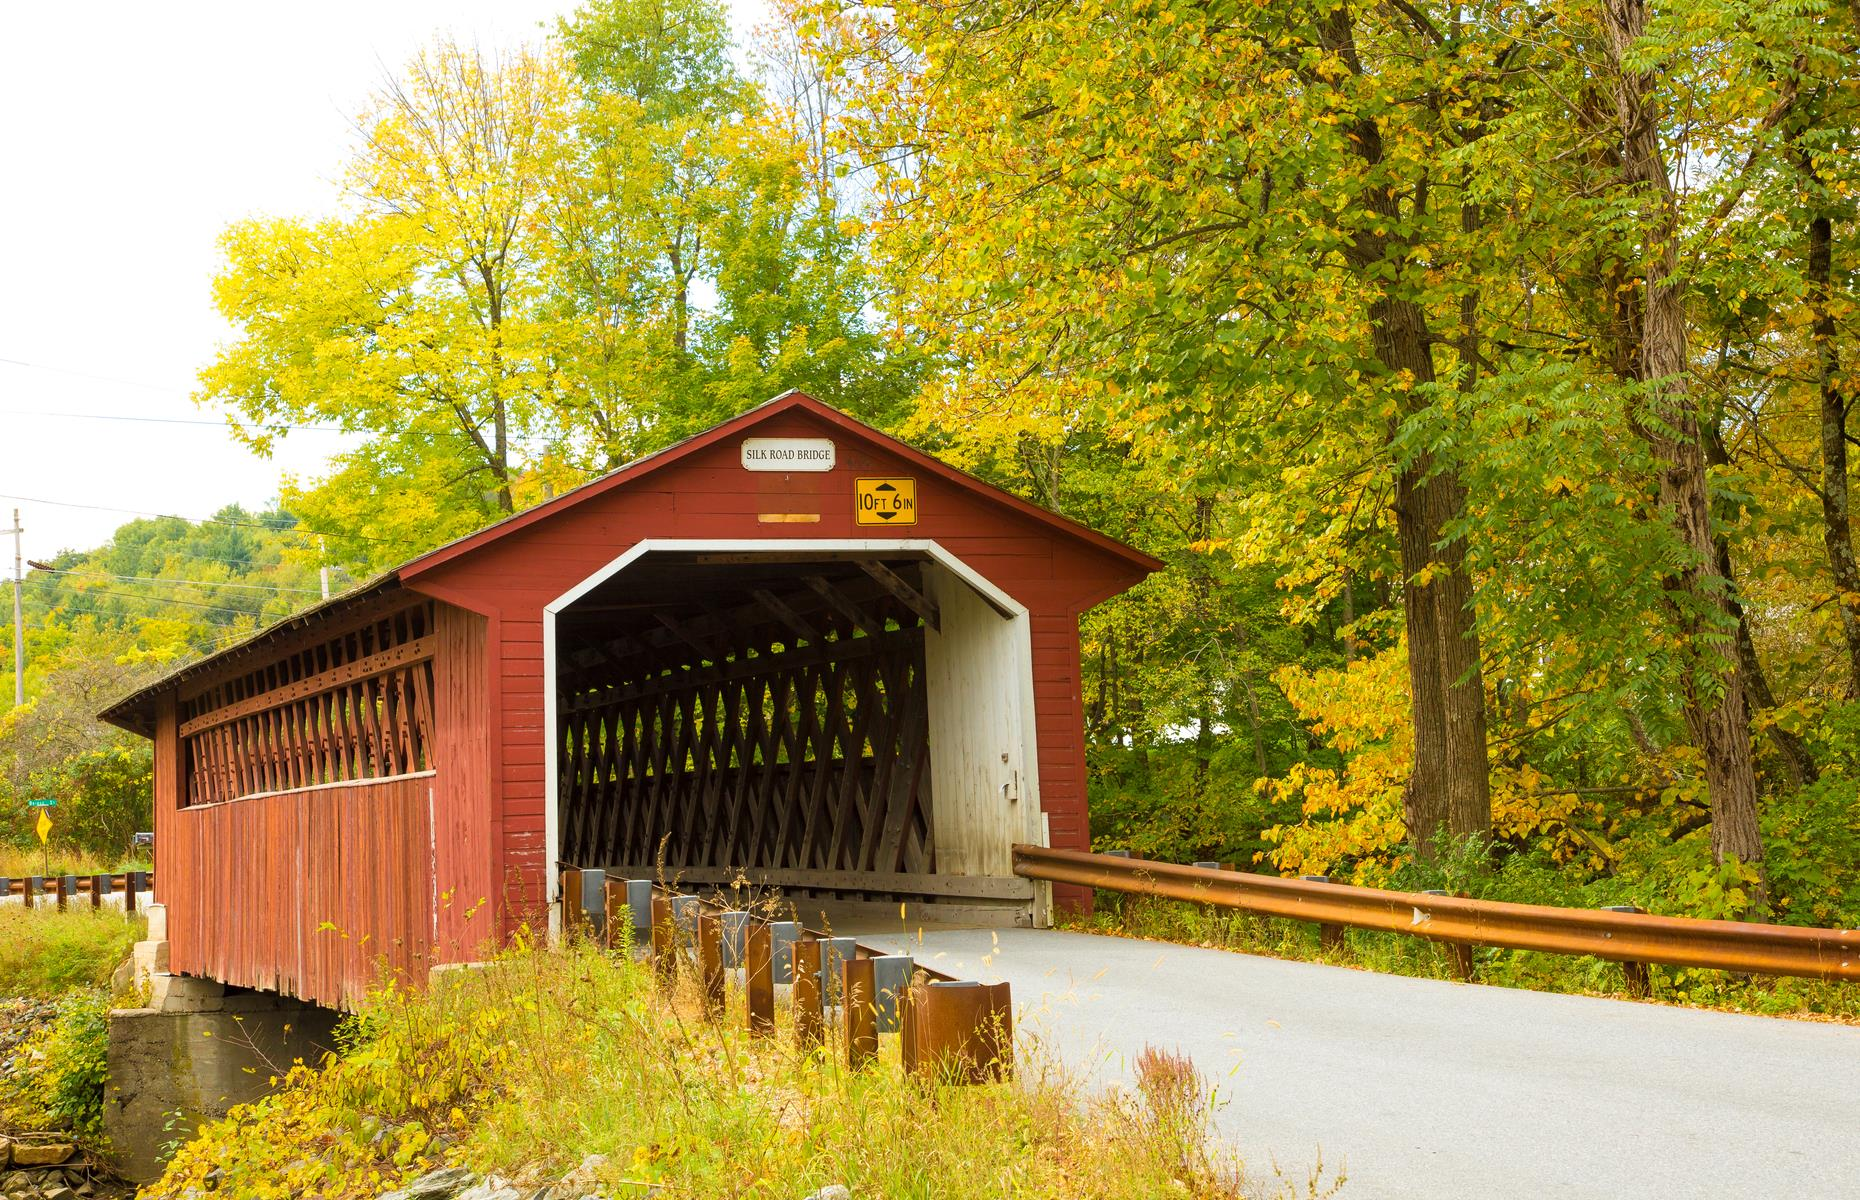 Slide 47 of 52: Vermont is another New England state famous for its covered bridges. This one has been straddling the Walloomsac River since the 1840s, spreading across 88 feet (27m) with intricate latticed detailing in its interior. In fall, its orange-red expanse blends beautifully with the surrounding foliage.